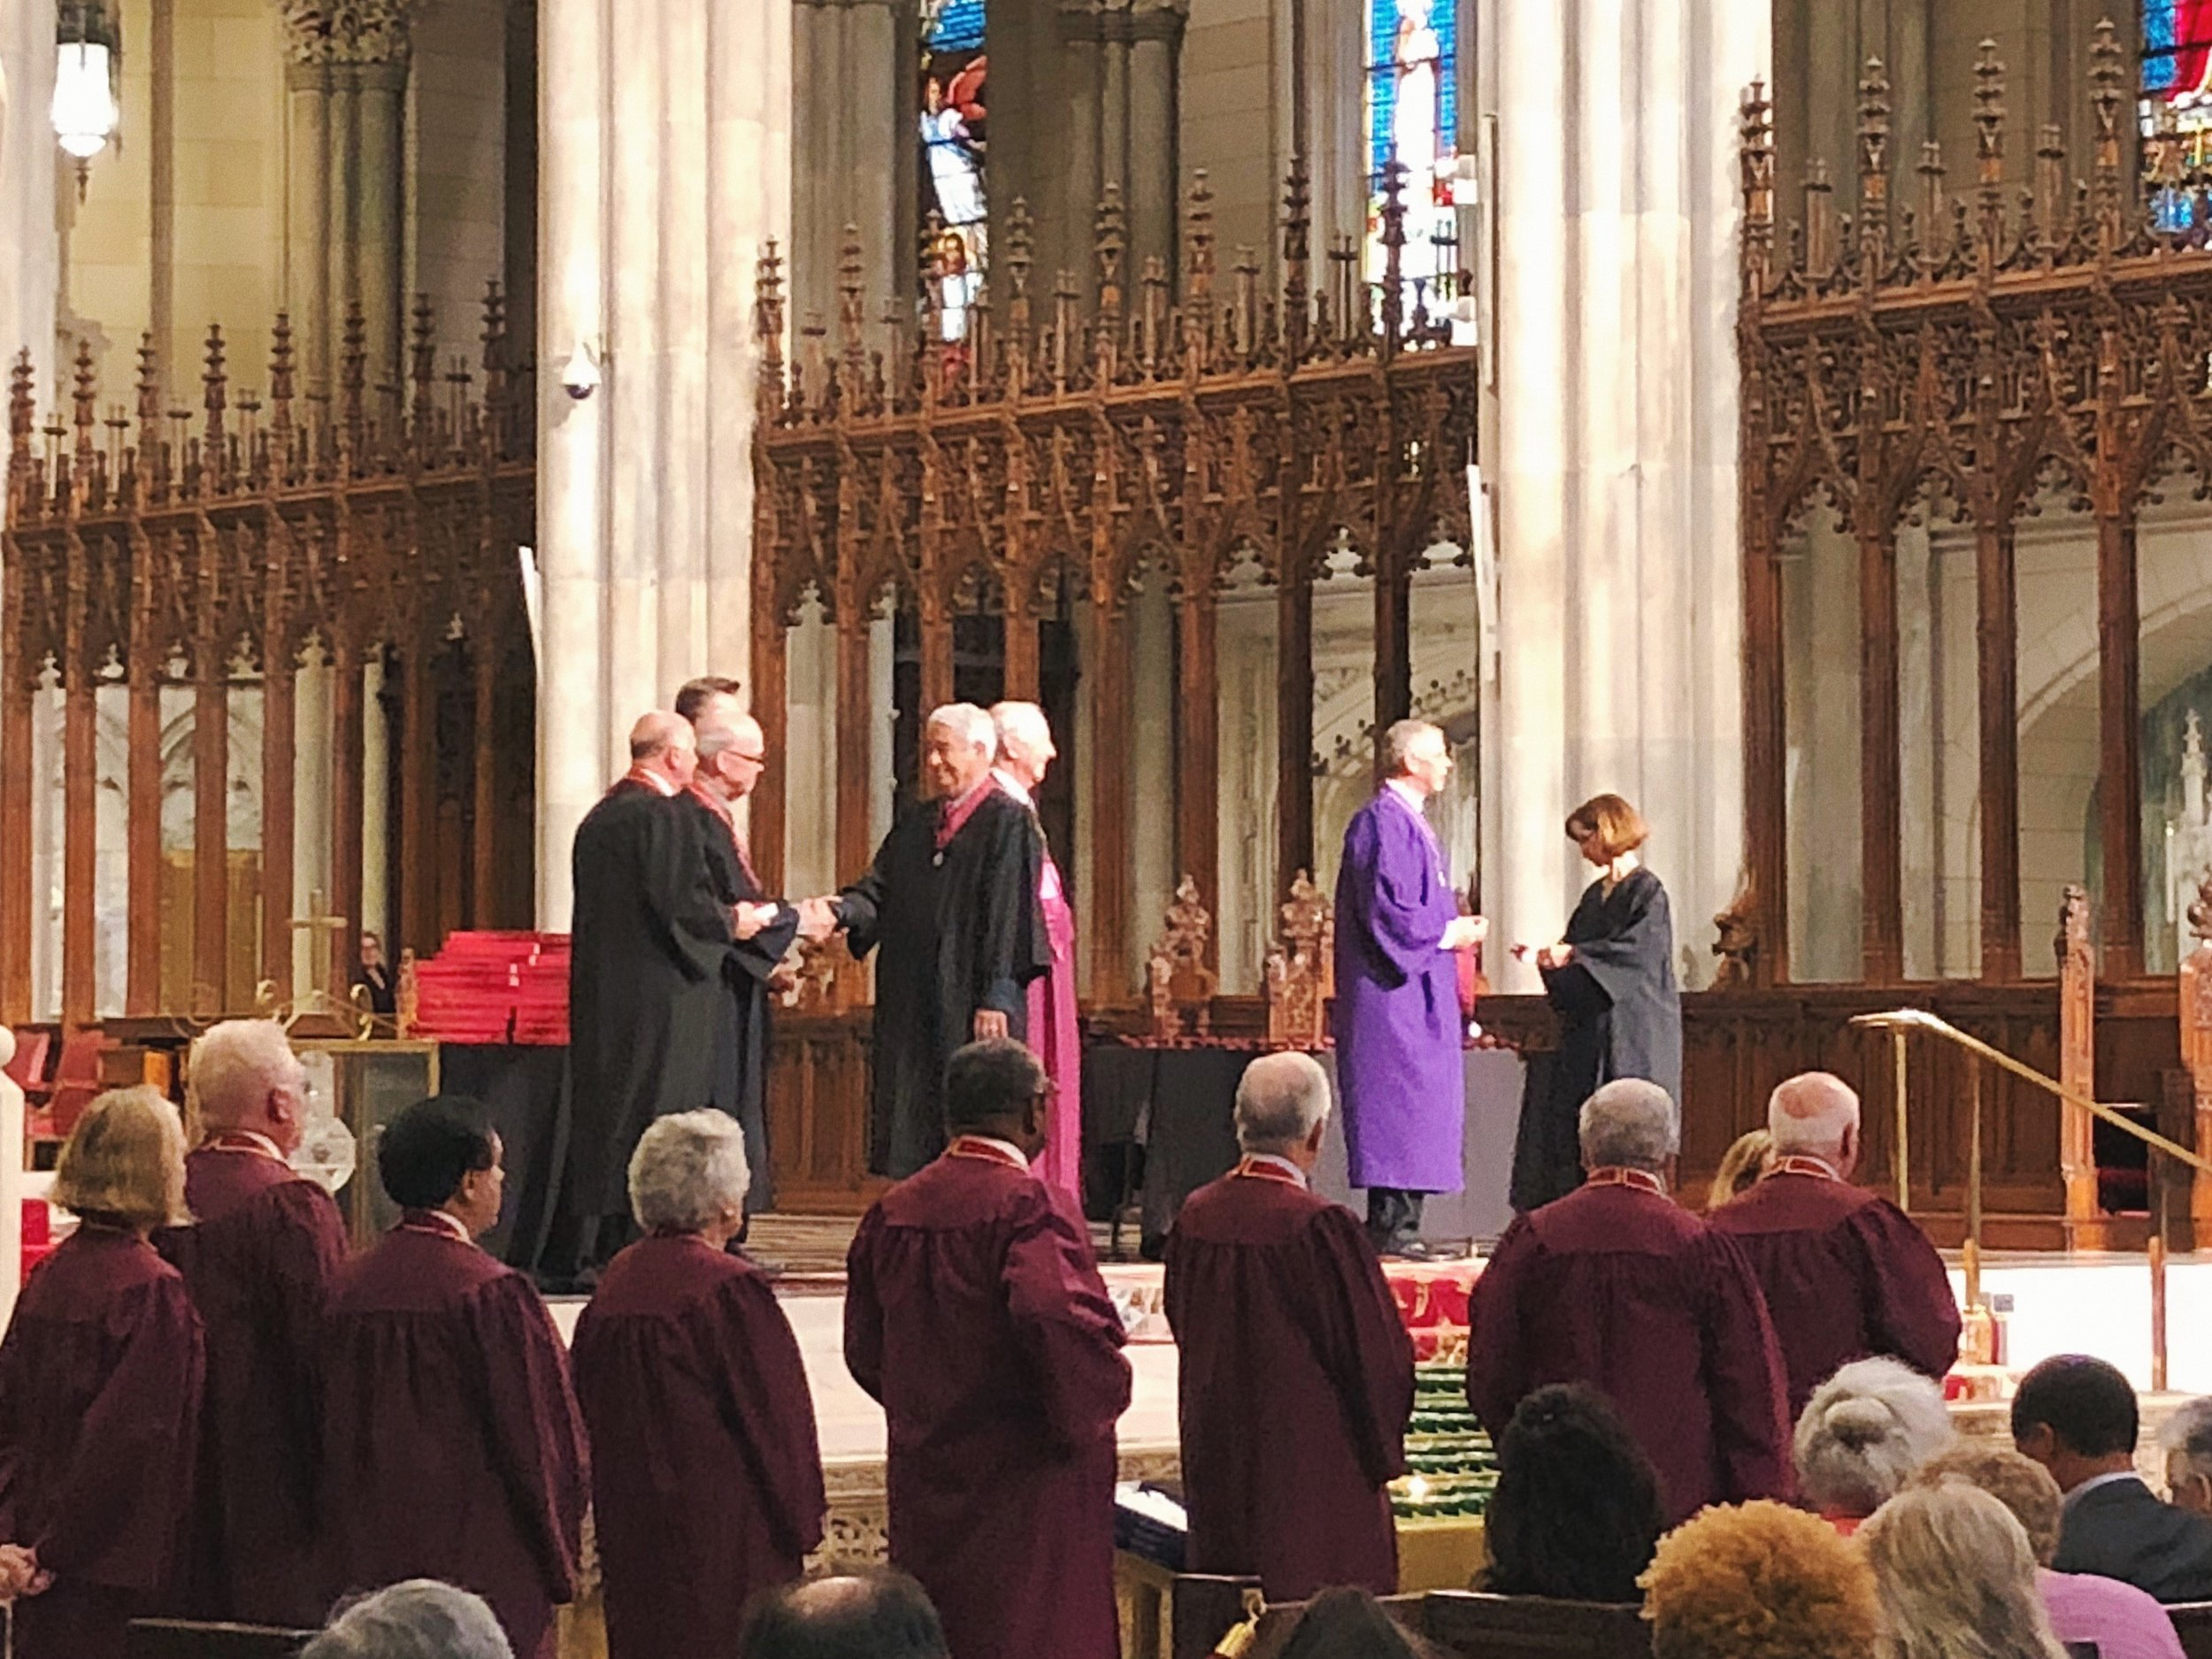 Joe receiving his medal at the AIA College of Fellows Investiture Ceremony at St. Patrick's Cathedral in New York City on June 22, 2018 | Photo: Matthew Kelley (FF&P New York)